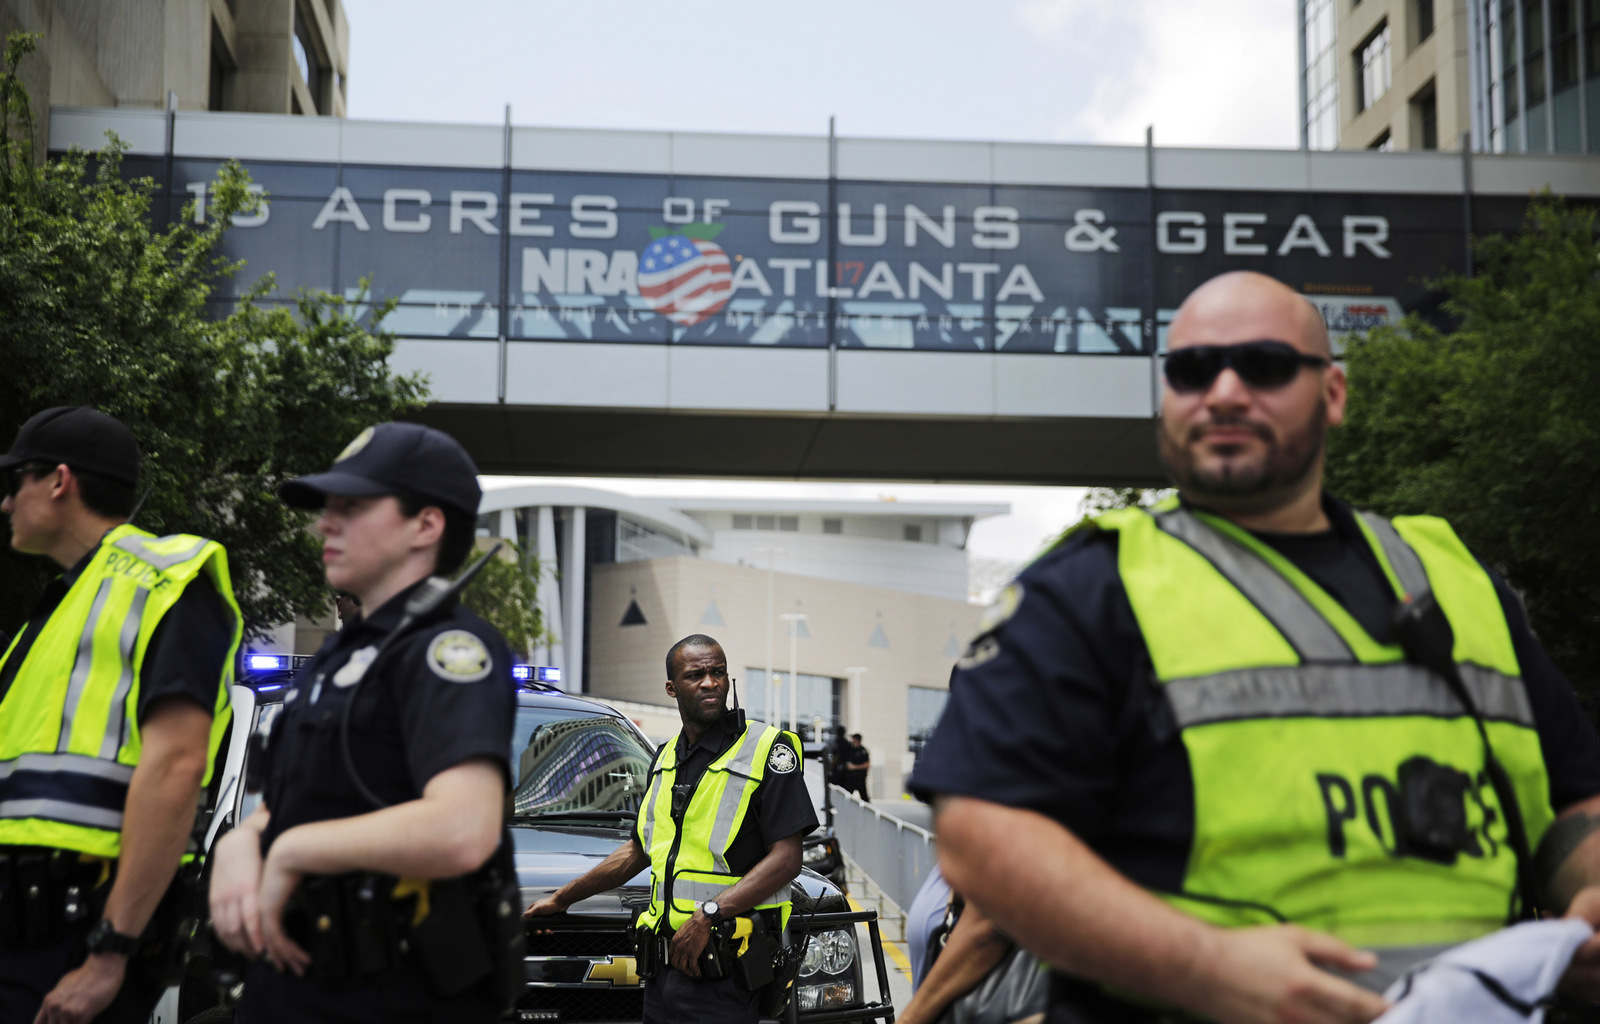 Police stand watch during a protest across the street from the National Rifle Association's annual convention where Donald Trump was scheduled to speak in Atlanta, April 28, 2017. (AP/David Goldman)